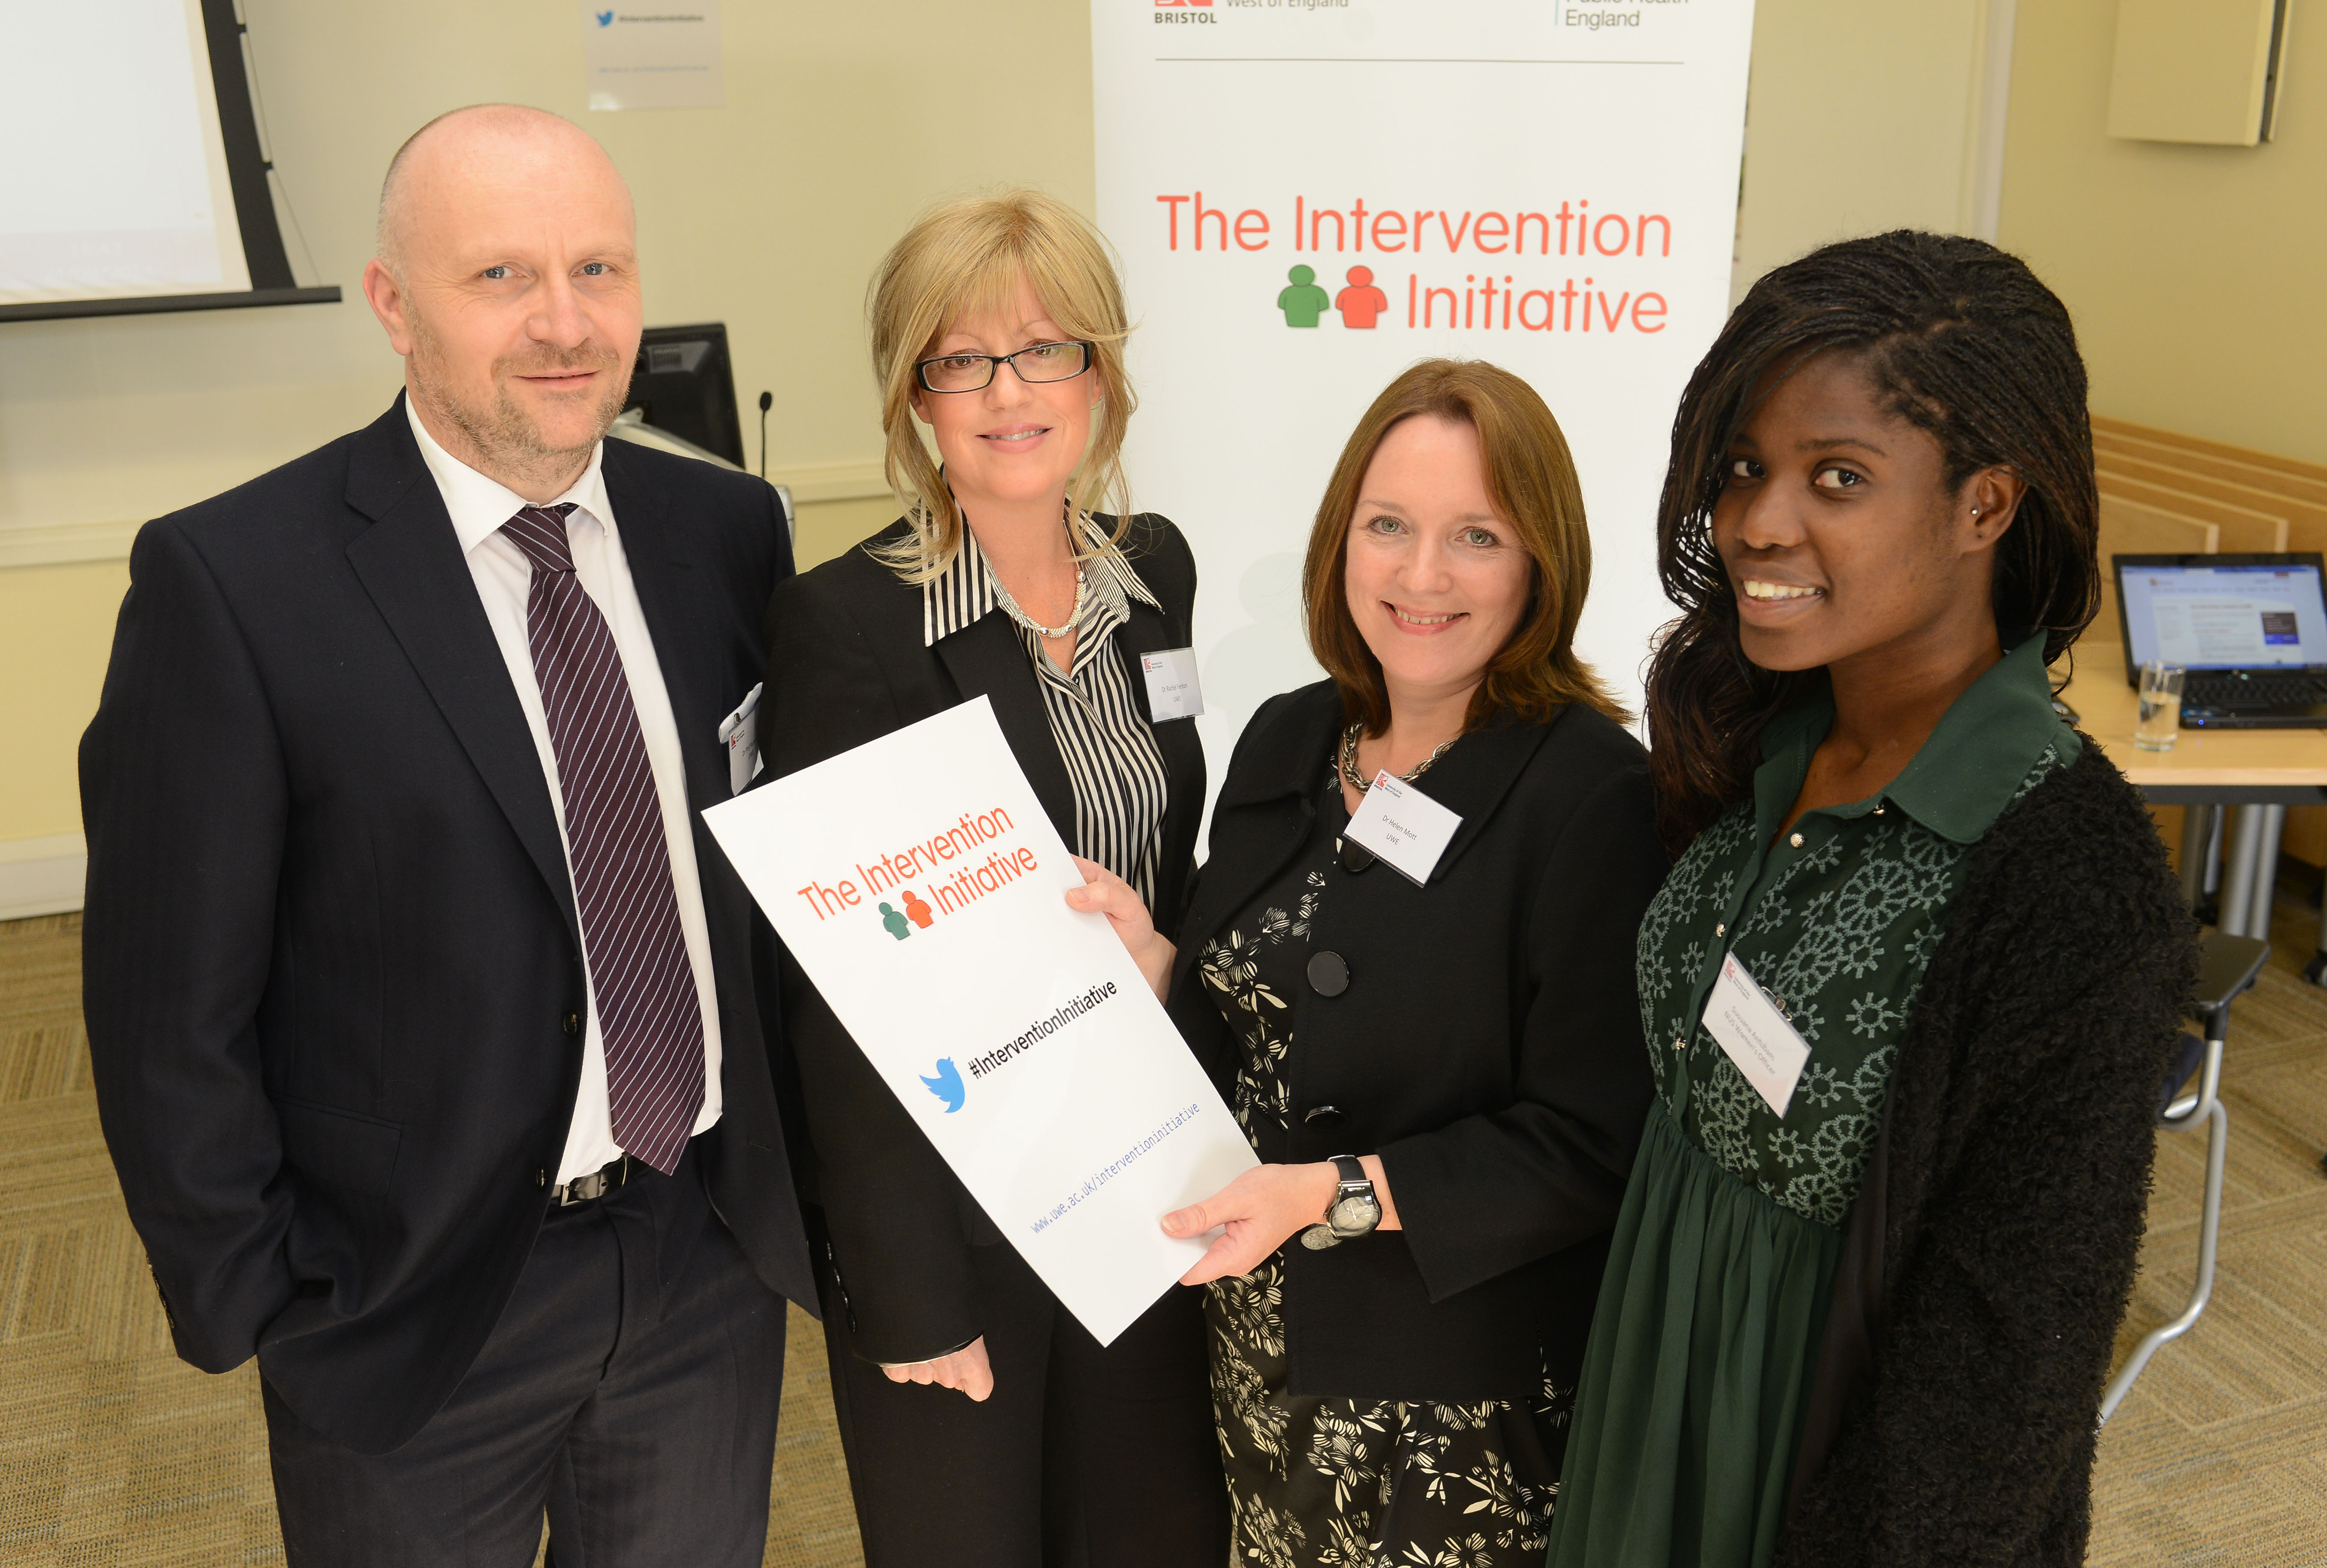 Launching The Intervention Initiative 2014